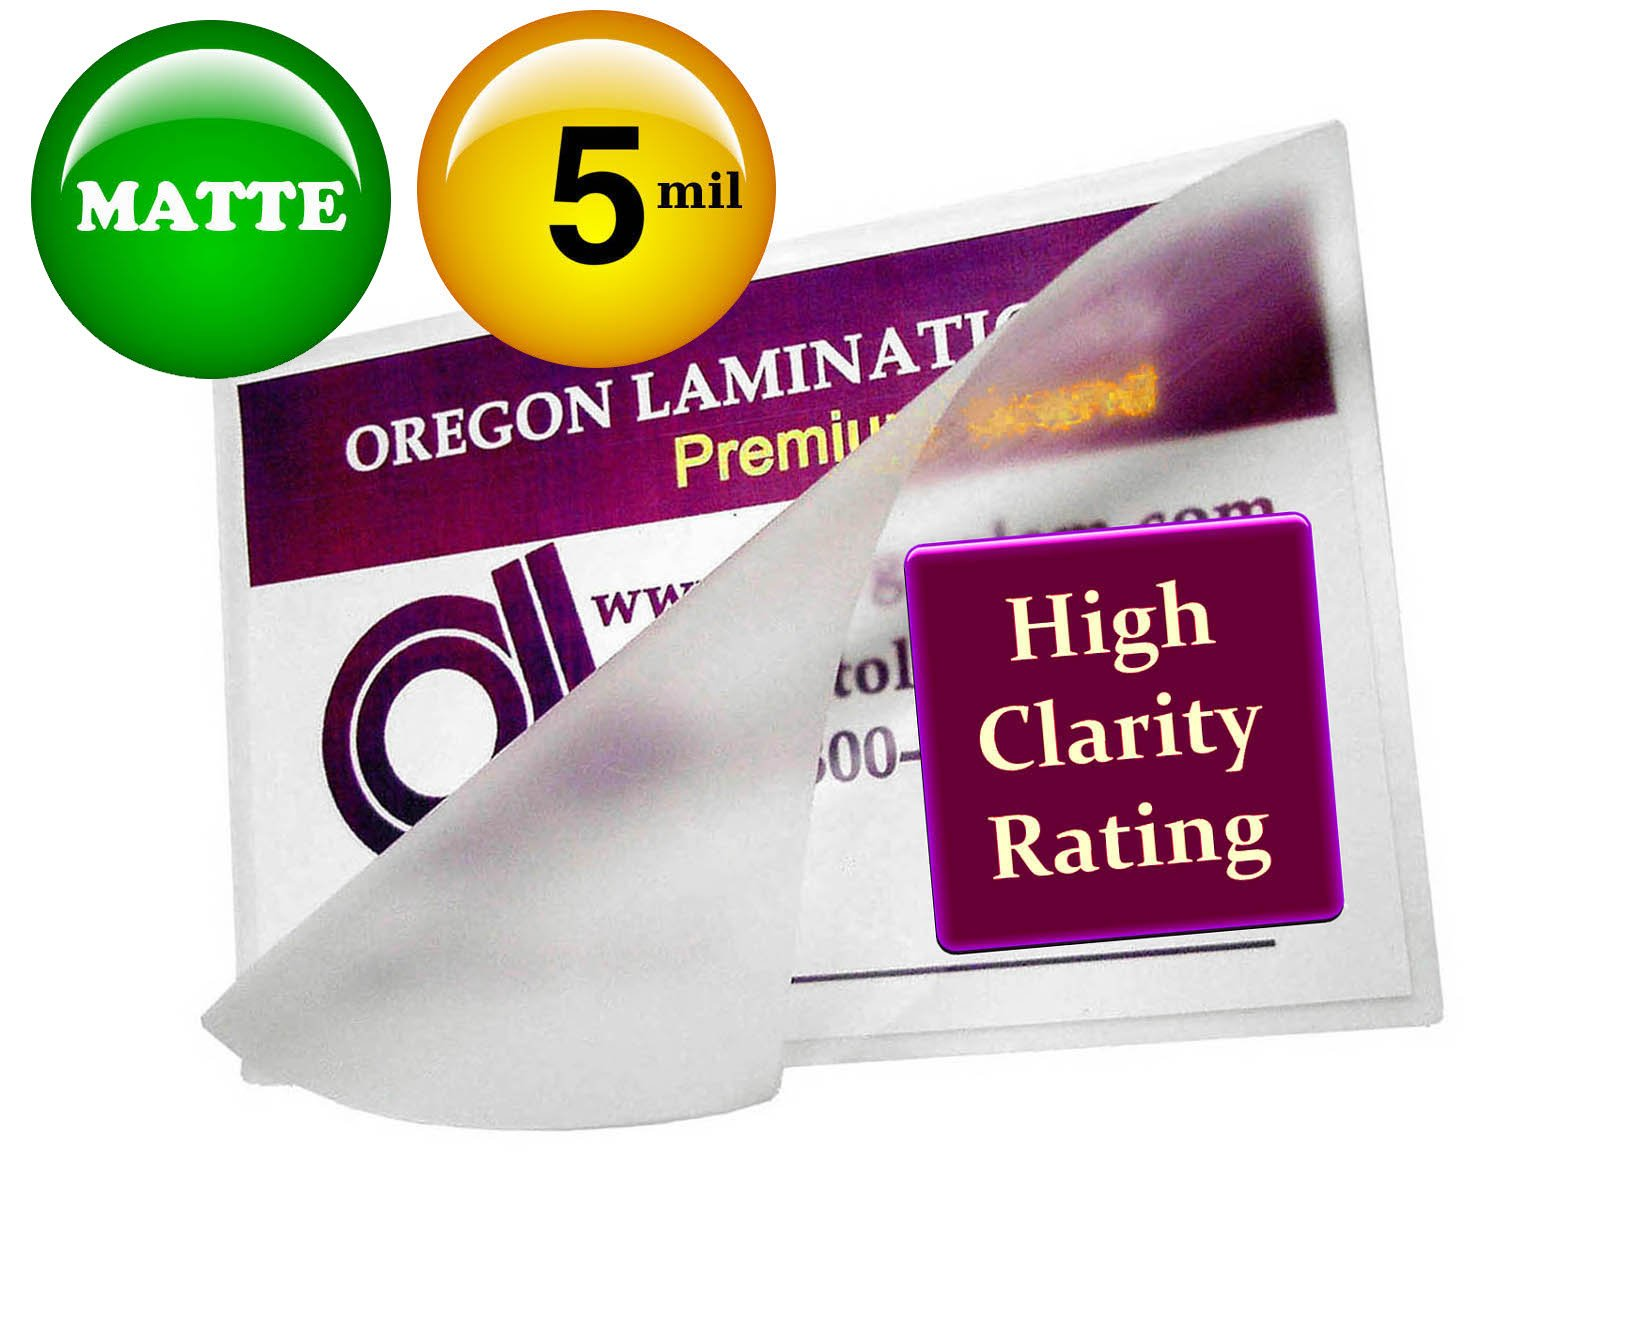 Matte Double Letter Laminating Pouches 5 Mil 11-1/2 x 17-1/2 (Pack of 200) Small Menu by Oregon Lamination Premium